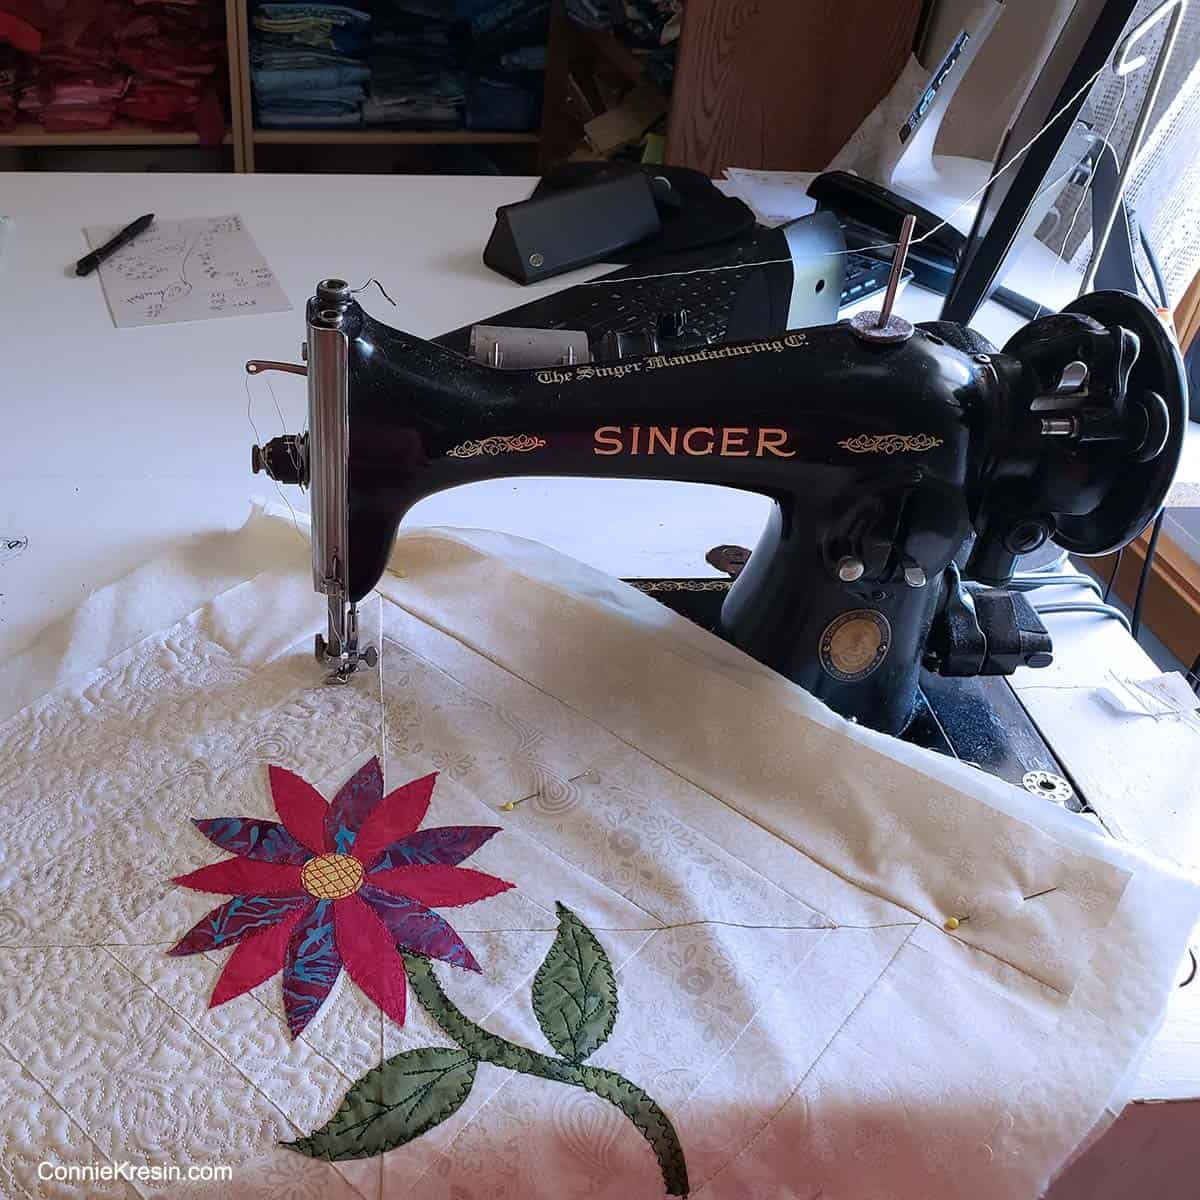 Vintage Singer sewing machine for quilting